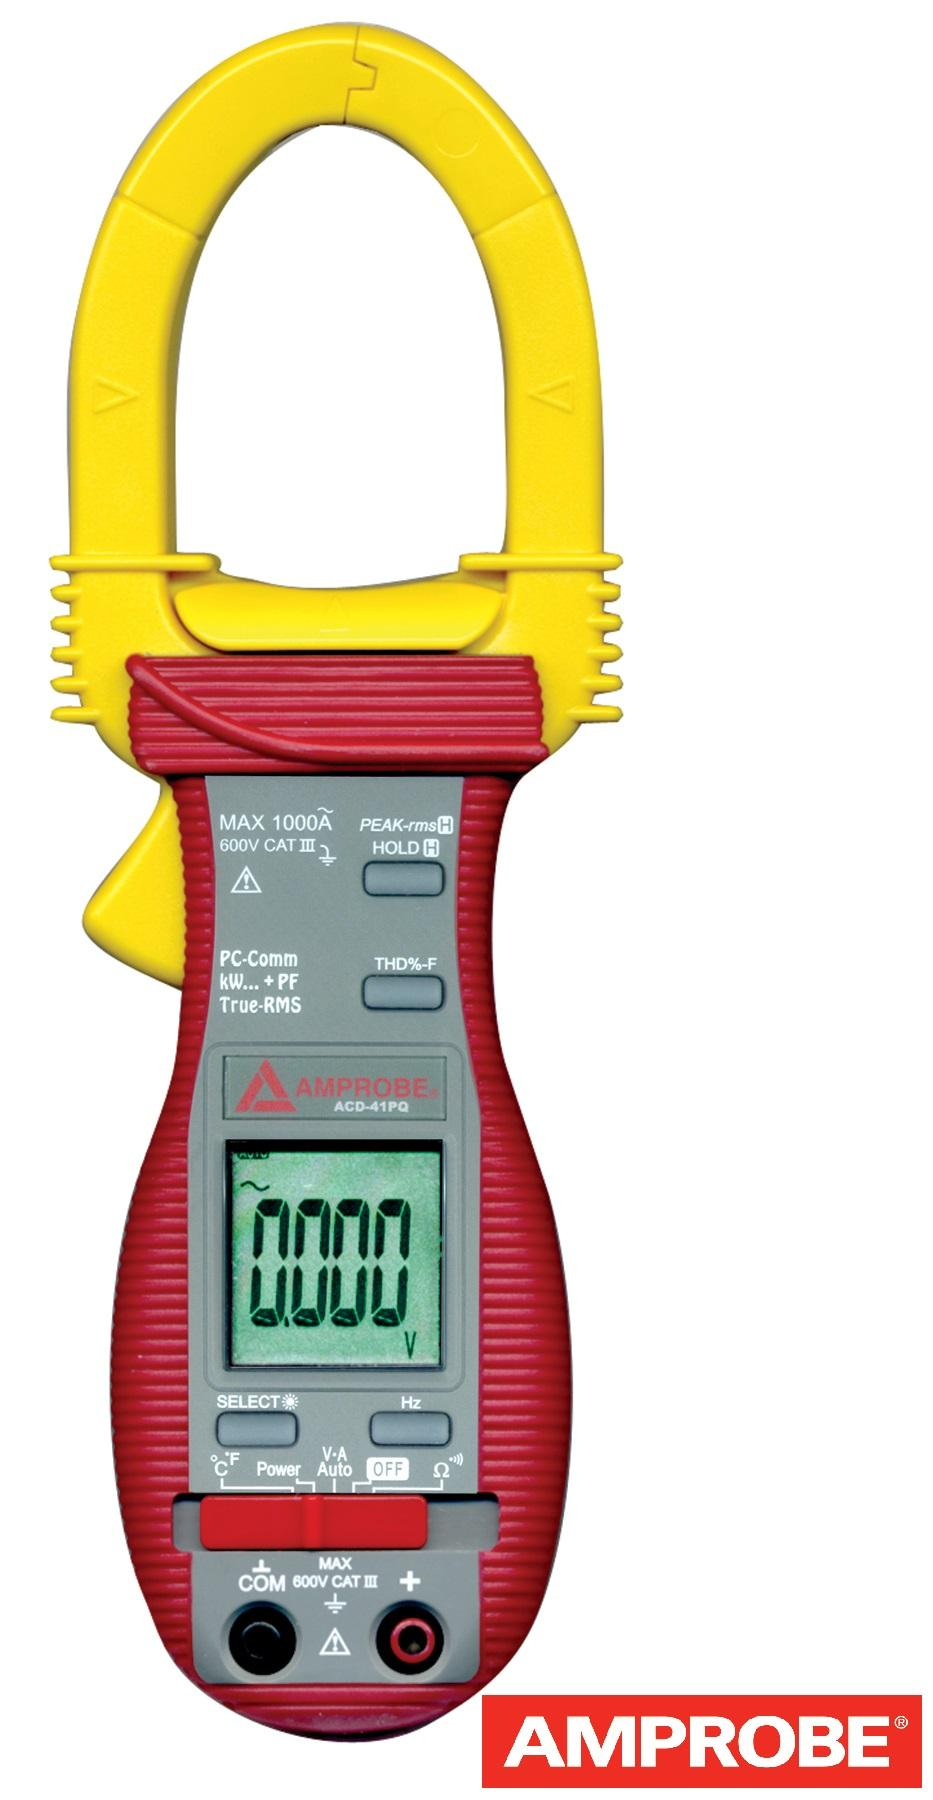 A Digital Clamp Meter 400 : Amprobe acdc trms digital clamp multimeter a ac dc